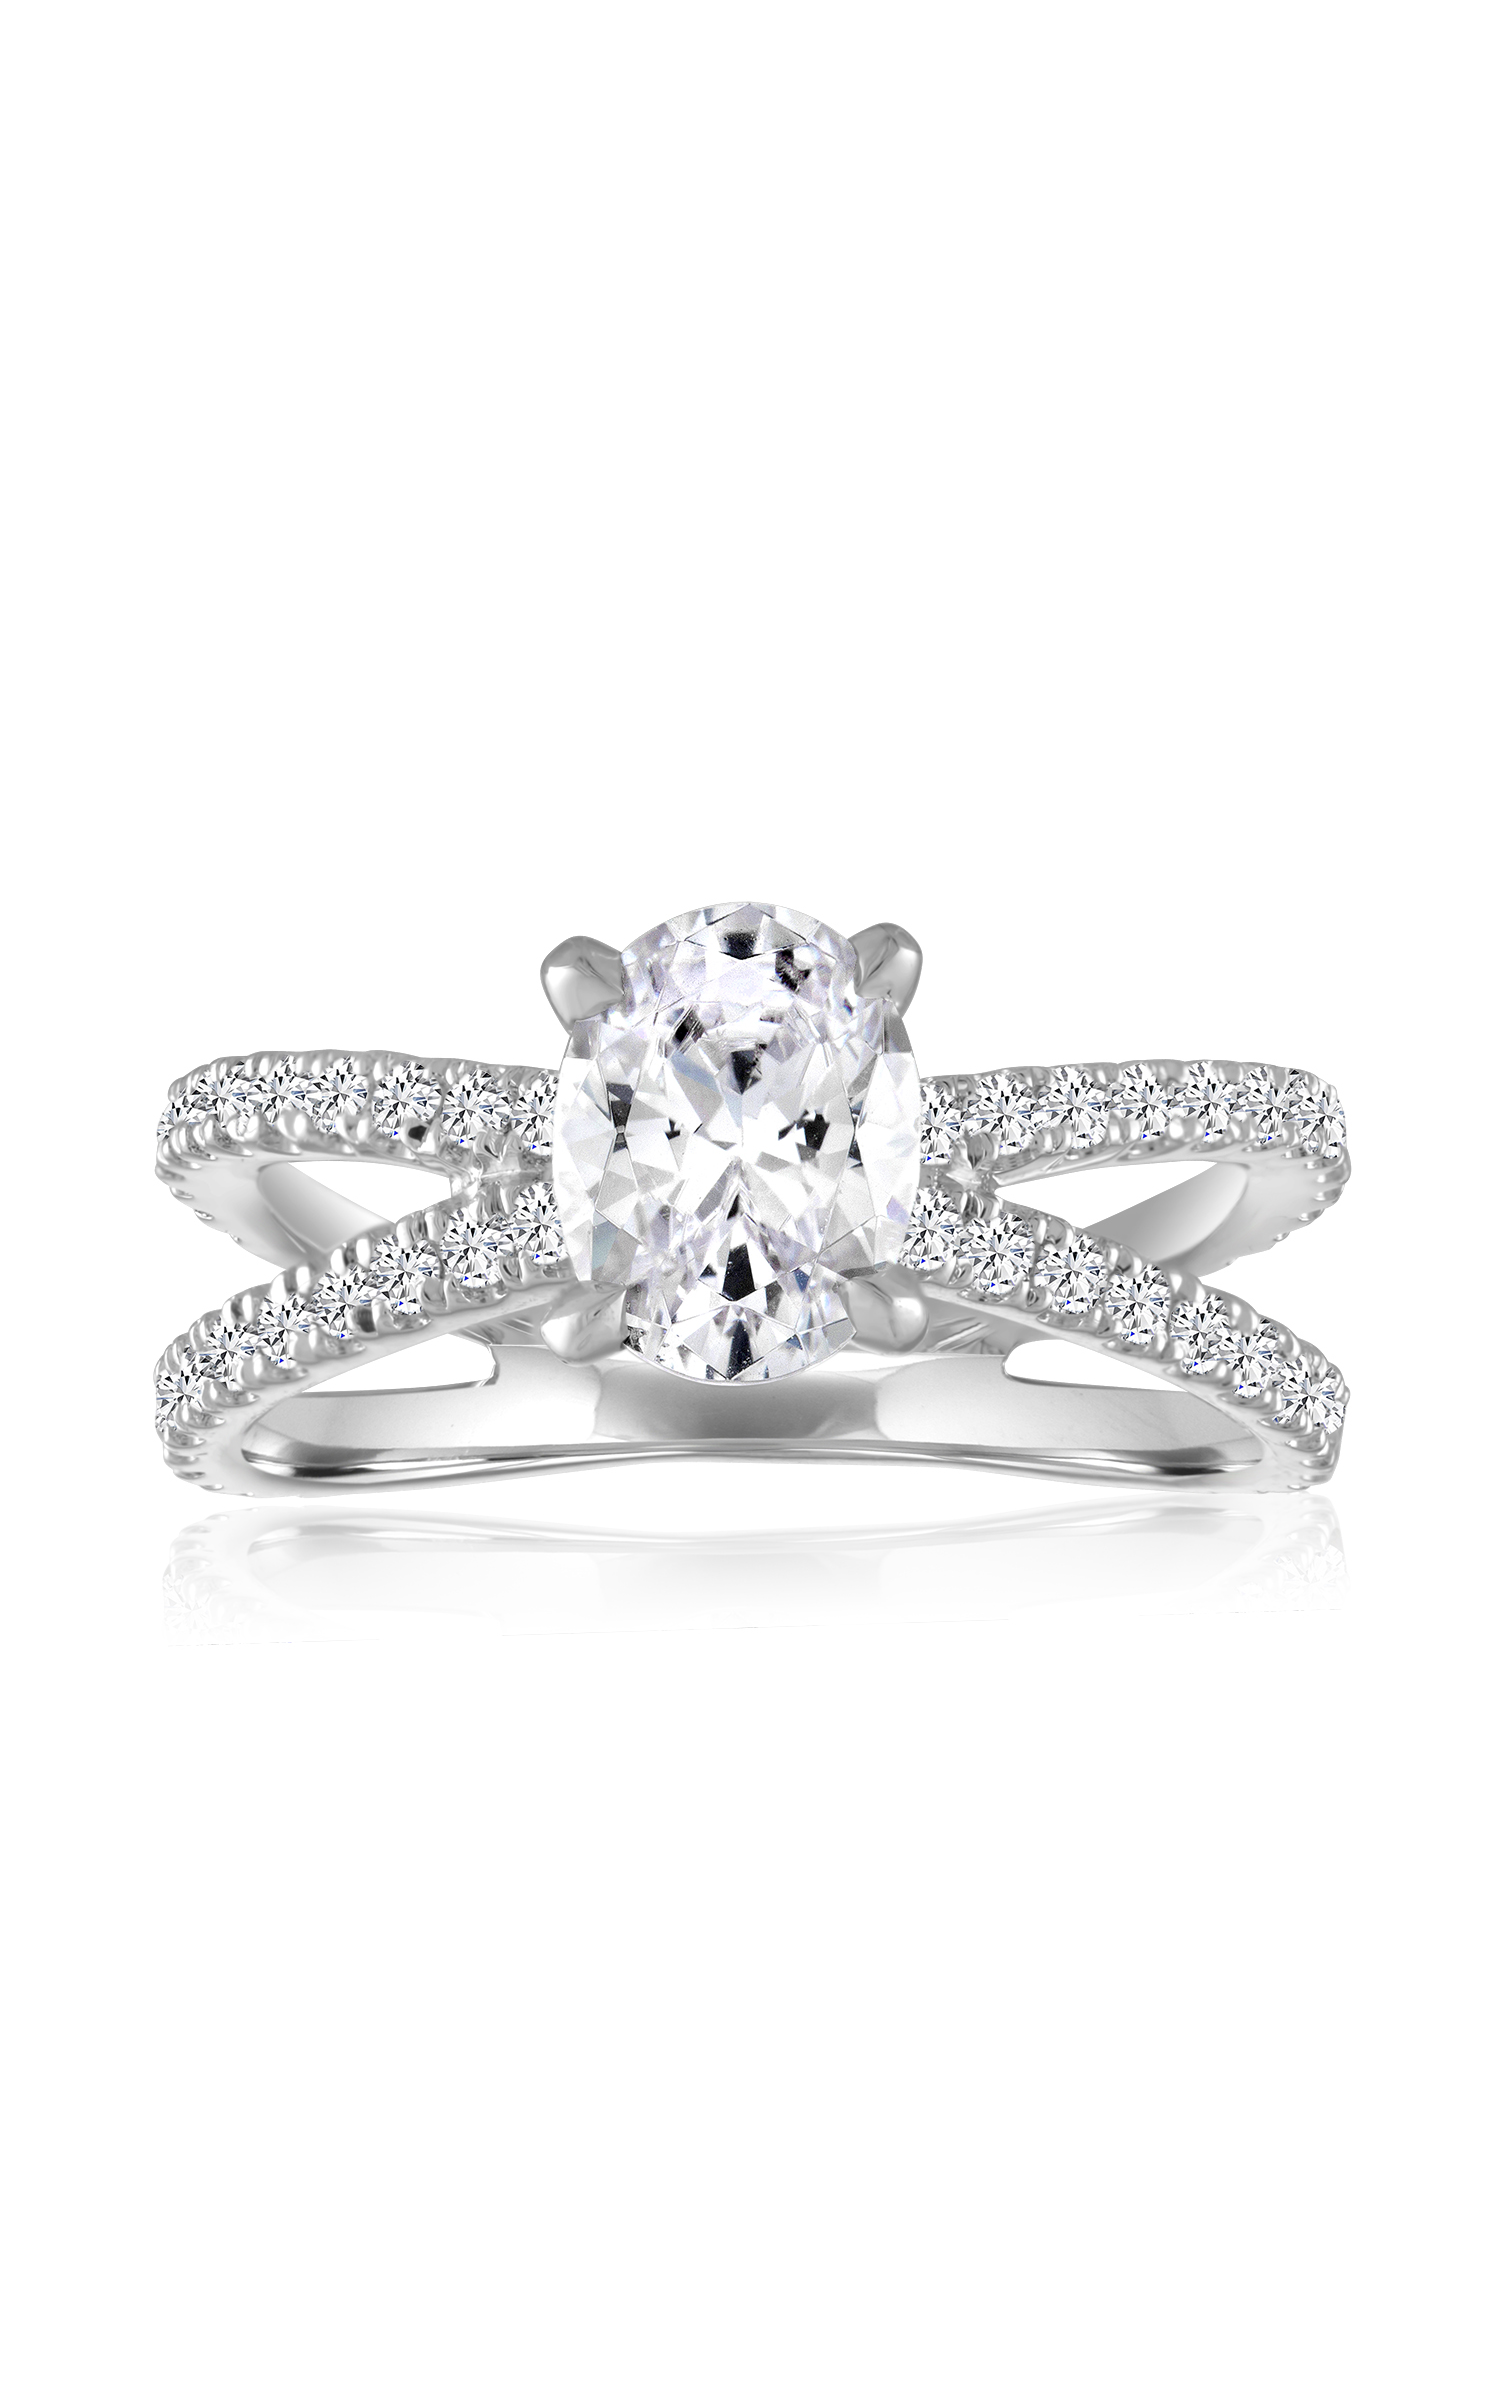 hilltop promise ring rings engagement nhdazco popular shops wedding shop pawn styles diamond and